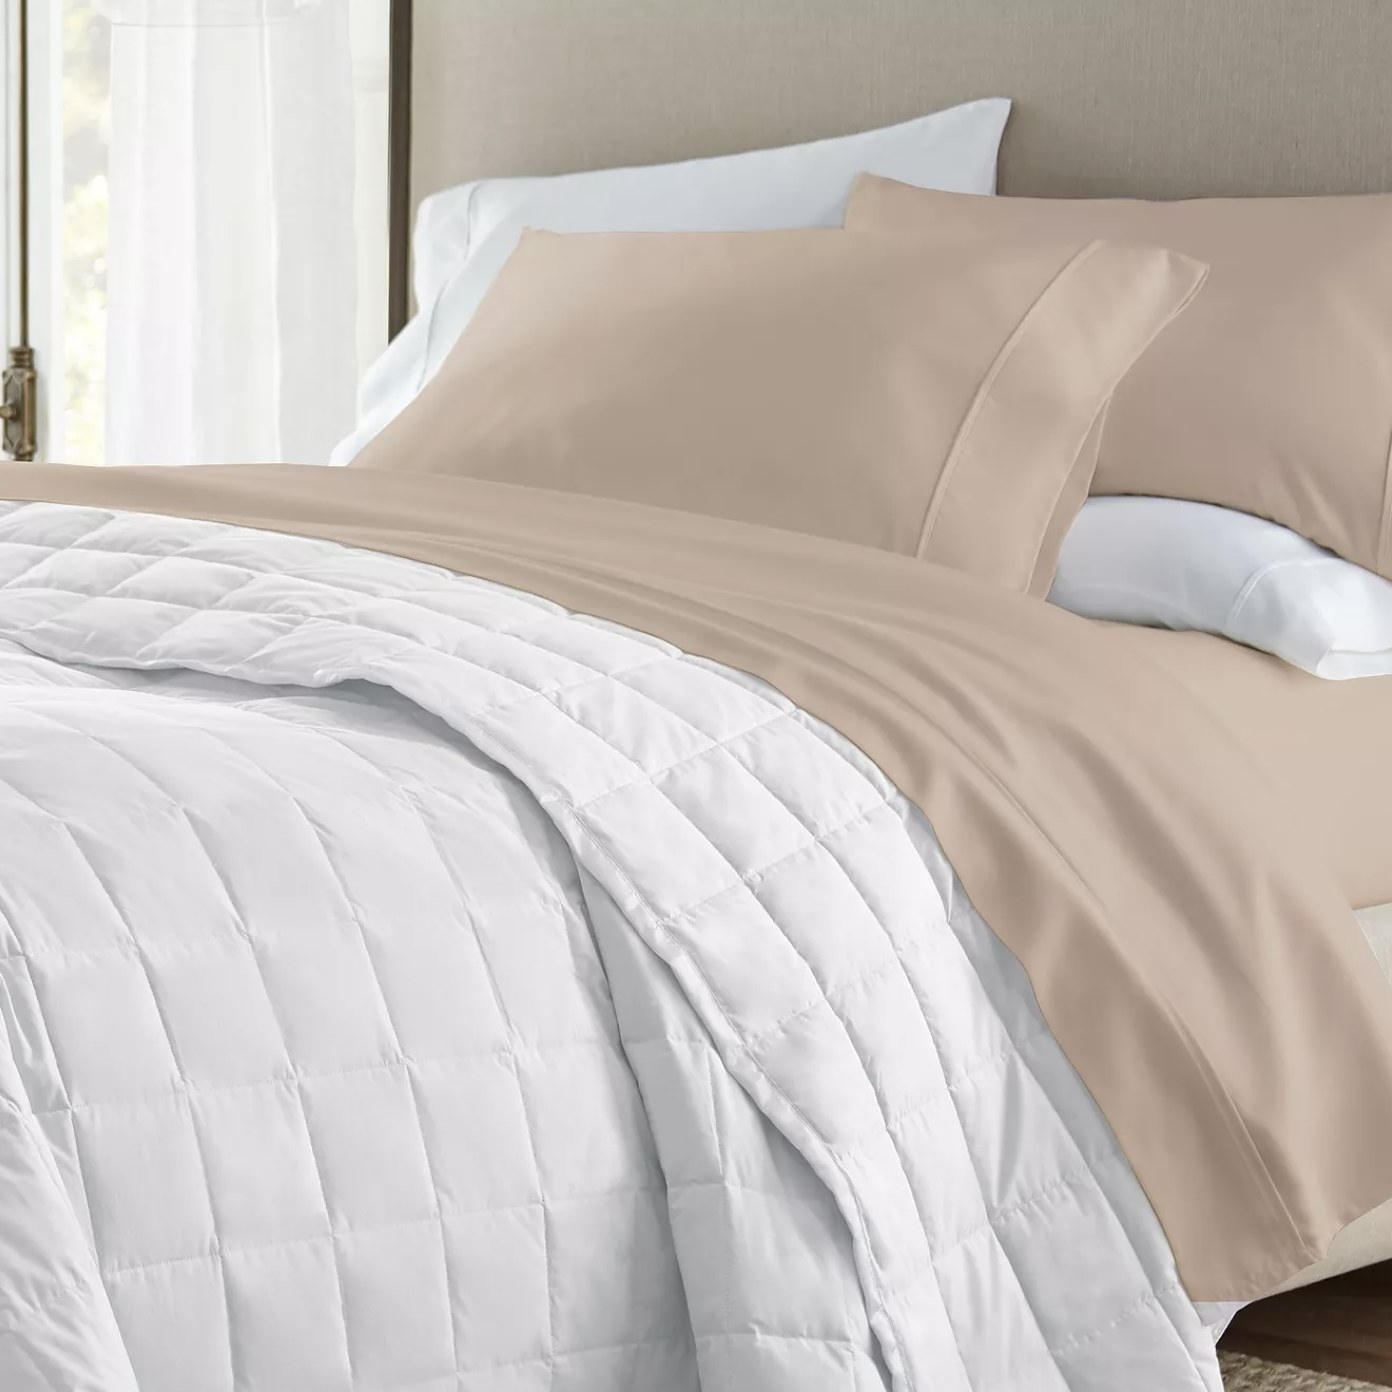 The taupe sheet set on a bed